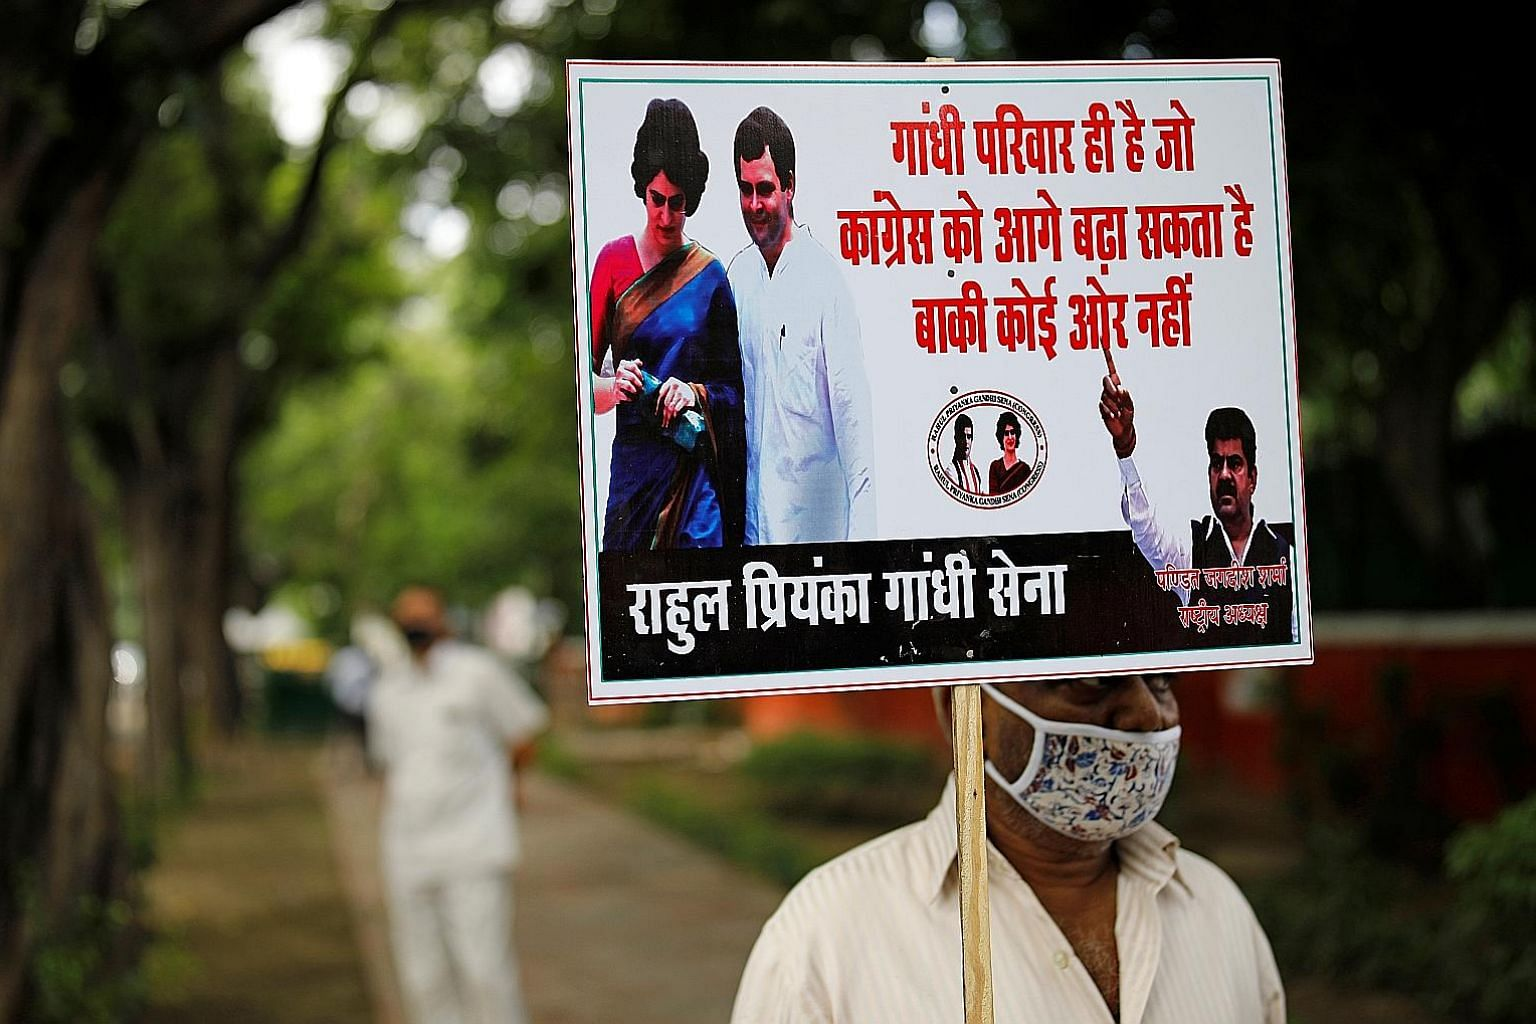 A protester at a rally to demand that the Congress party elect its leader from the Nehru-Gandhi family, outside the party's headquarters in New Delhi yesterday. Congress' interim president Sonia Gandhi had wanted to step down following the release of